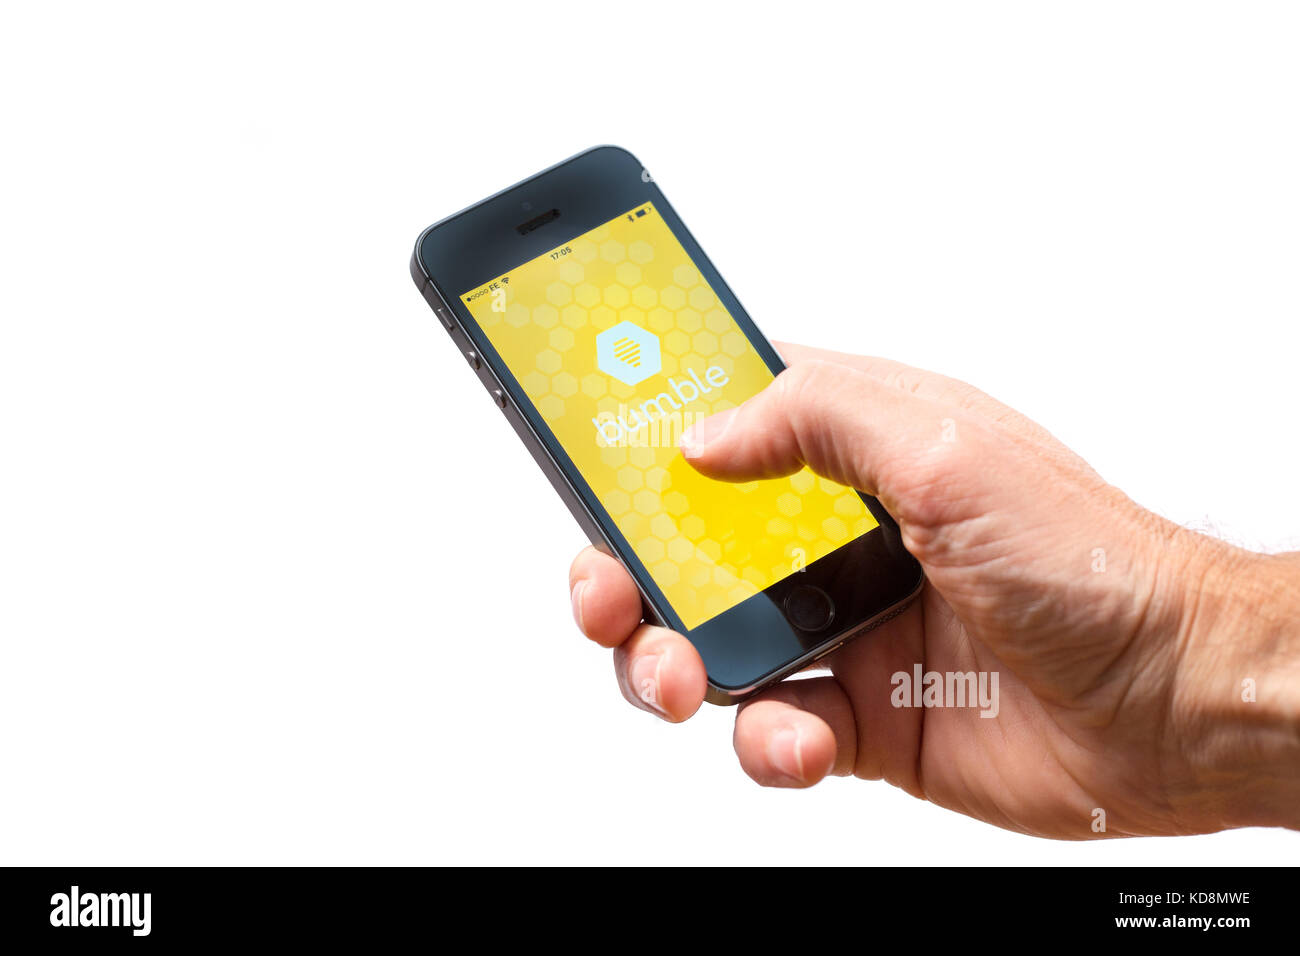 Yellow dating app